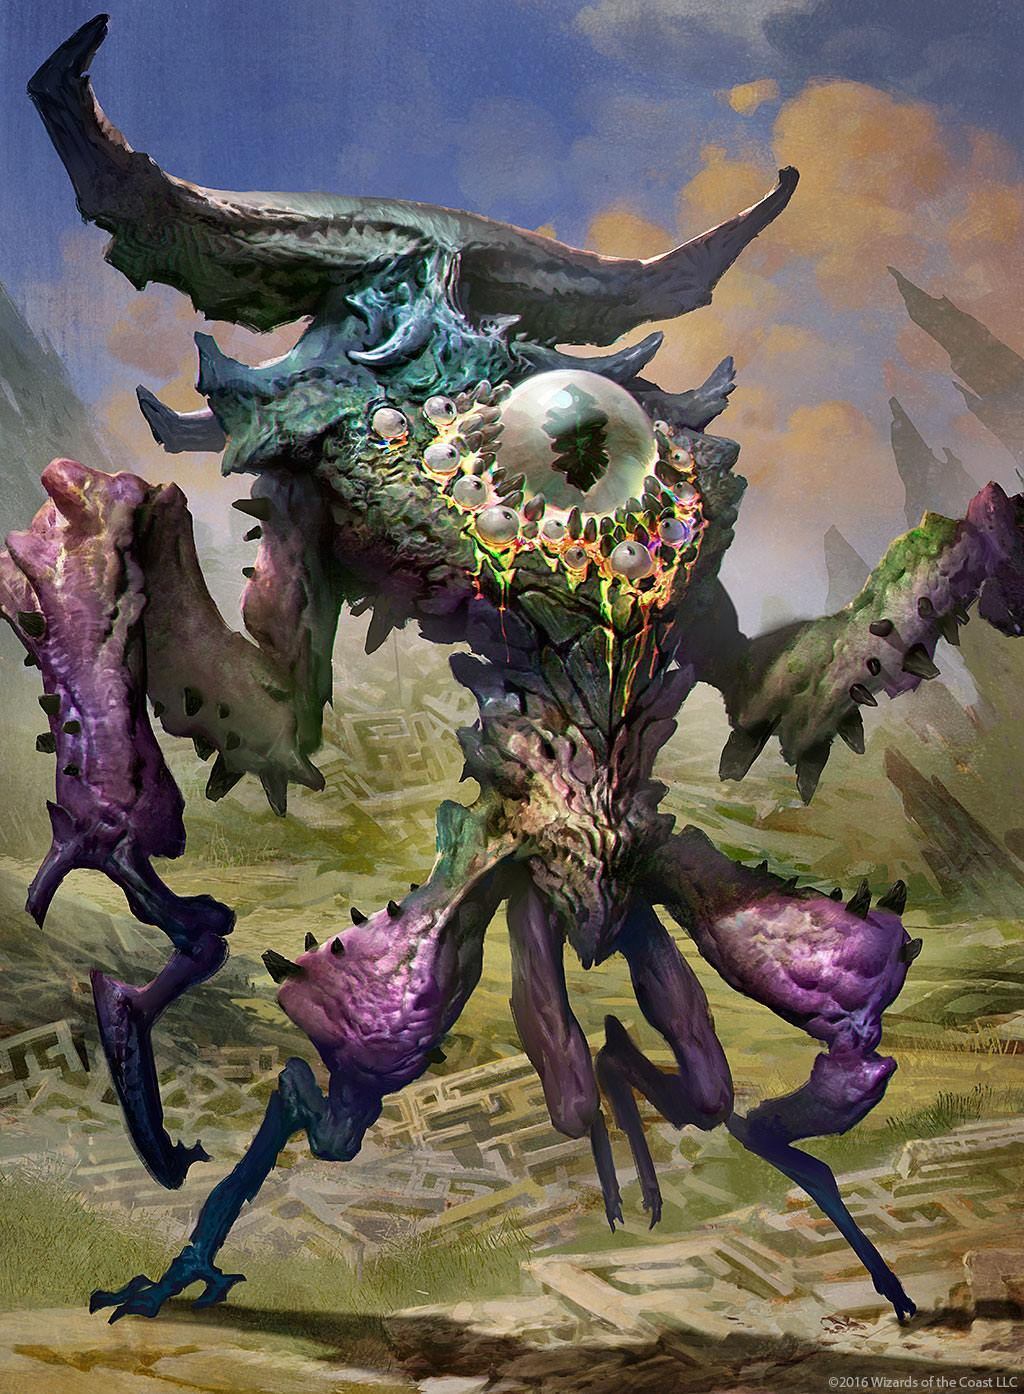 Deck Overview- Modern Eldrazi and Taxes